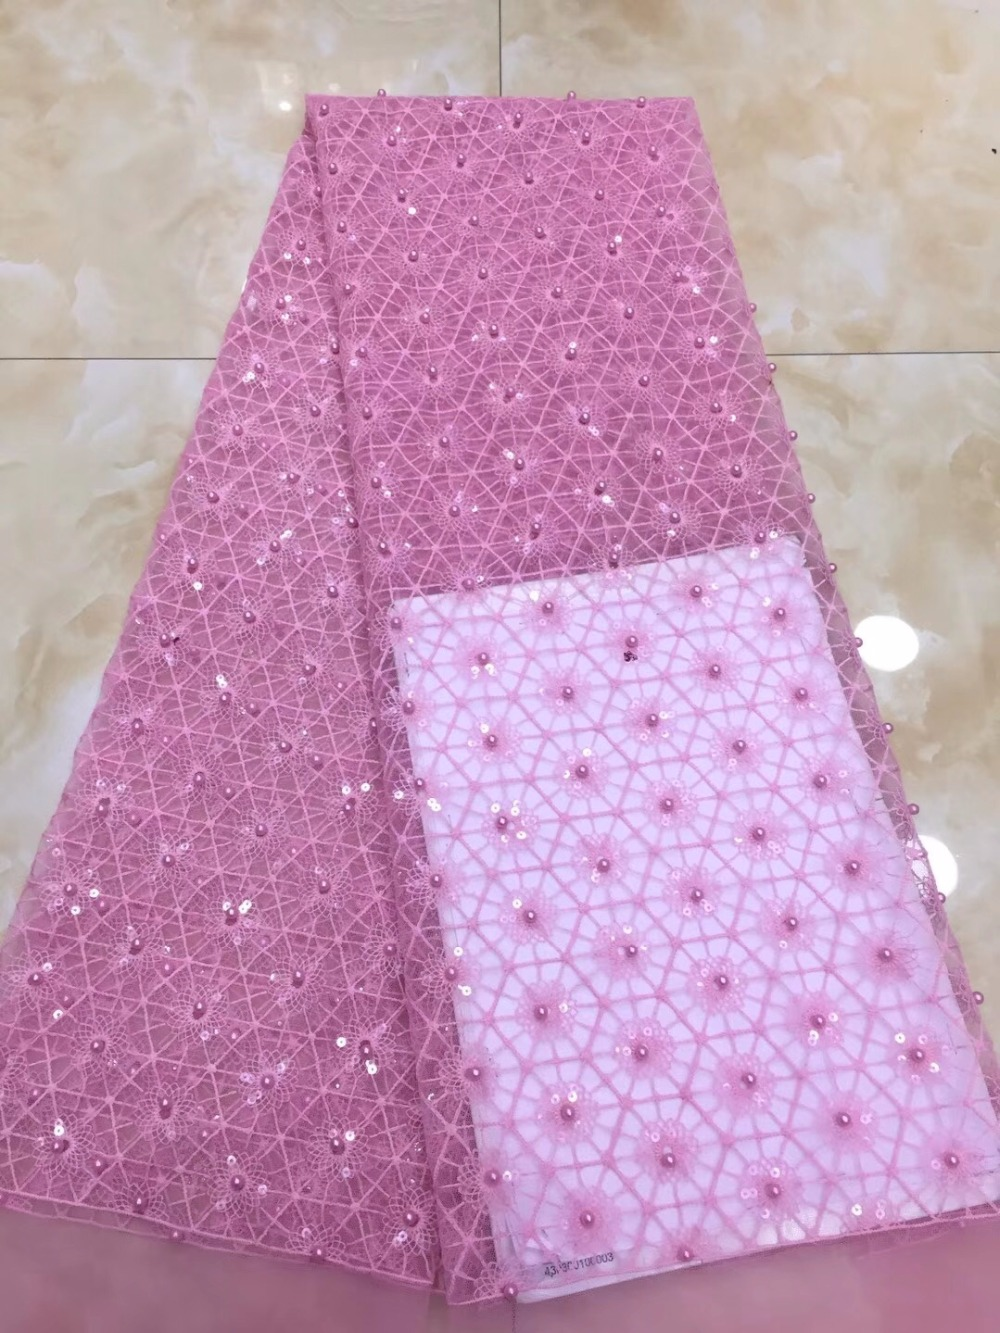 African High Quality Lace With beads Fashion French Net Lace Fabric 2018 Latest African Mesh LaceAfrican High Quality Lace With beads Fashion French Net Lace Fabric 2018 Latest African Mesh Lace